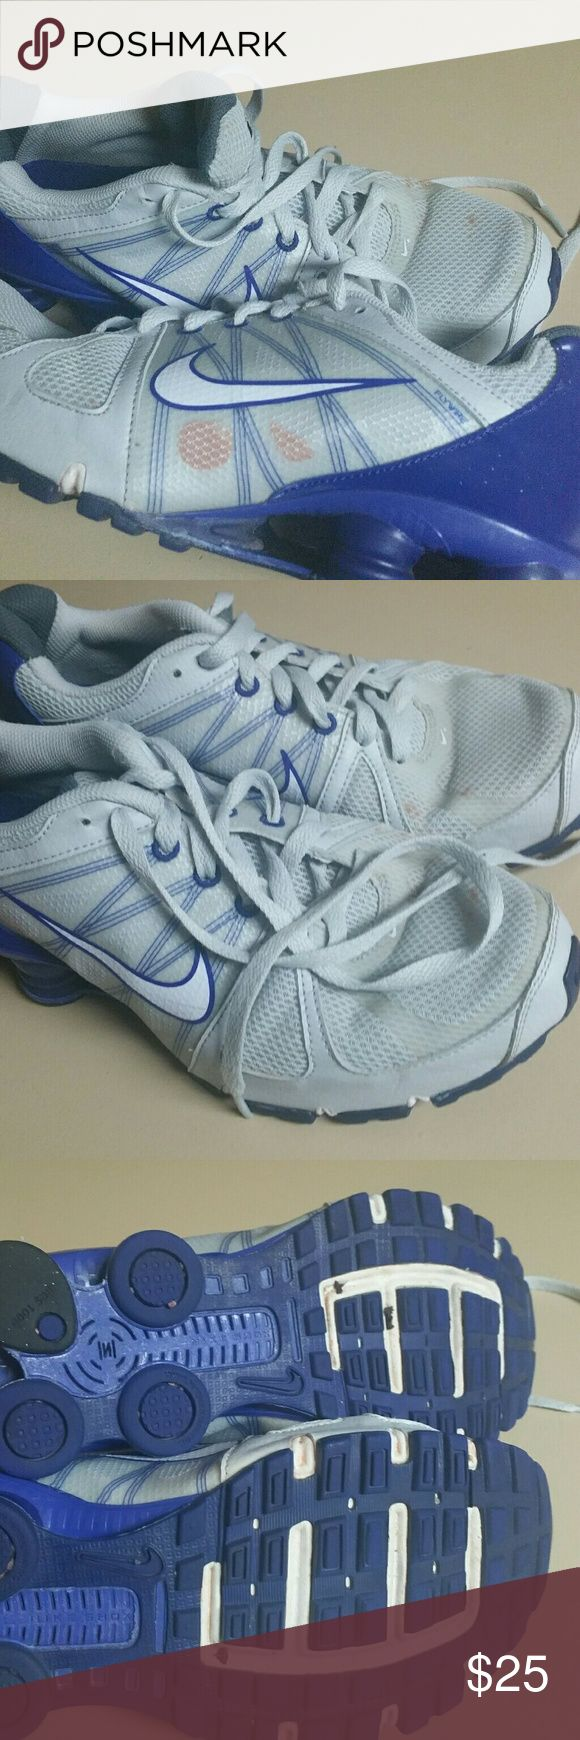 Nike Shocks Barely worn. Has baseball field dirt stain. Nike Shoes Athletic Shoes